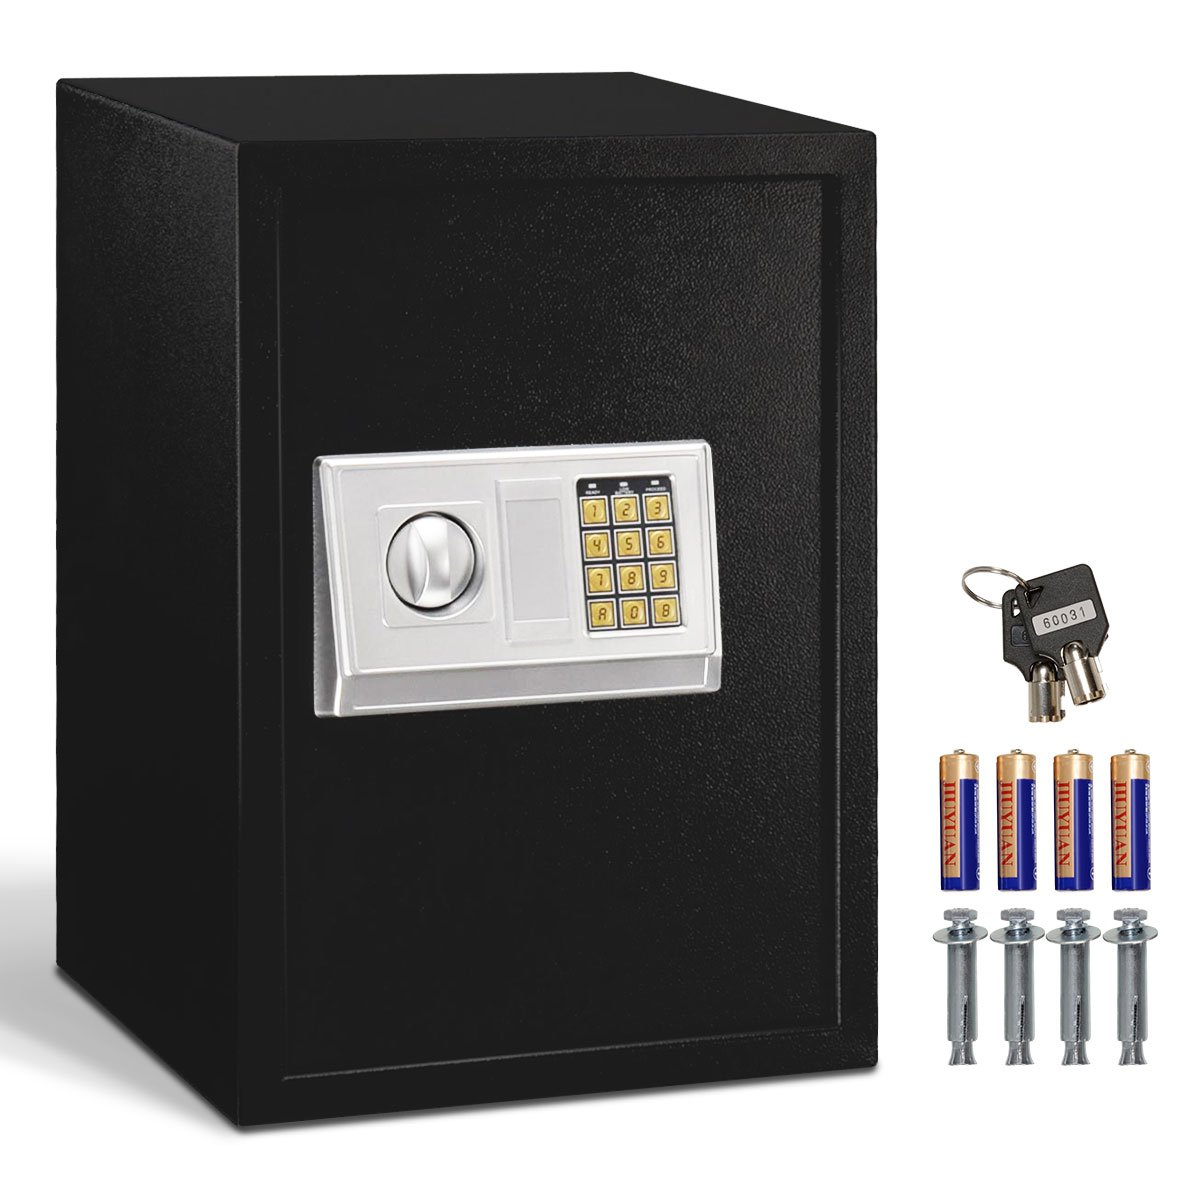 Giantex Large Digital Electronic Safe Box Keypad Lock Security Home Office Hotel Gun